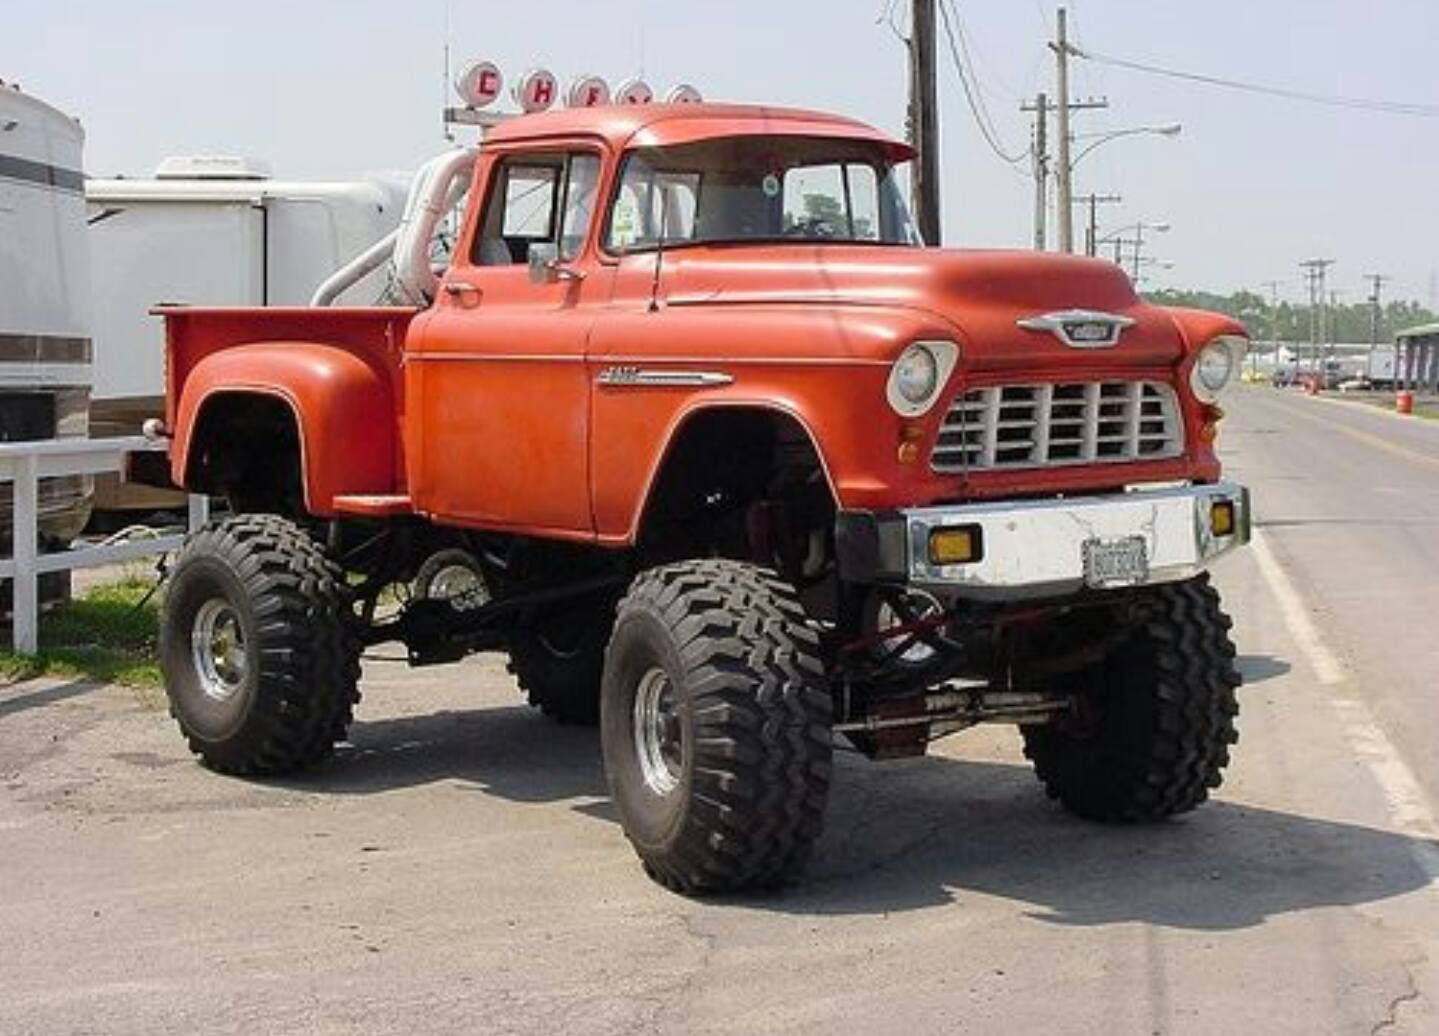 55 chevy 1 ton axles 44in tires 16 inches of lift 572 big